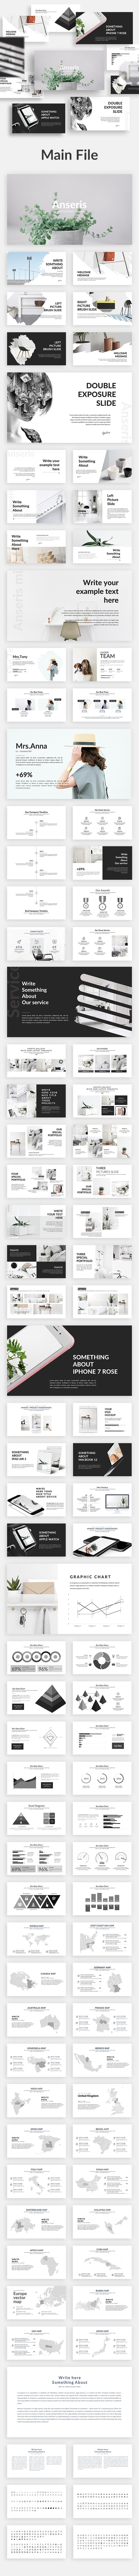 Anseris - Minimal Google Slide Template - Google Slides Presentation Templates